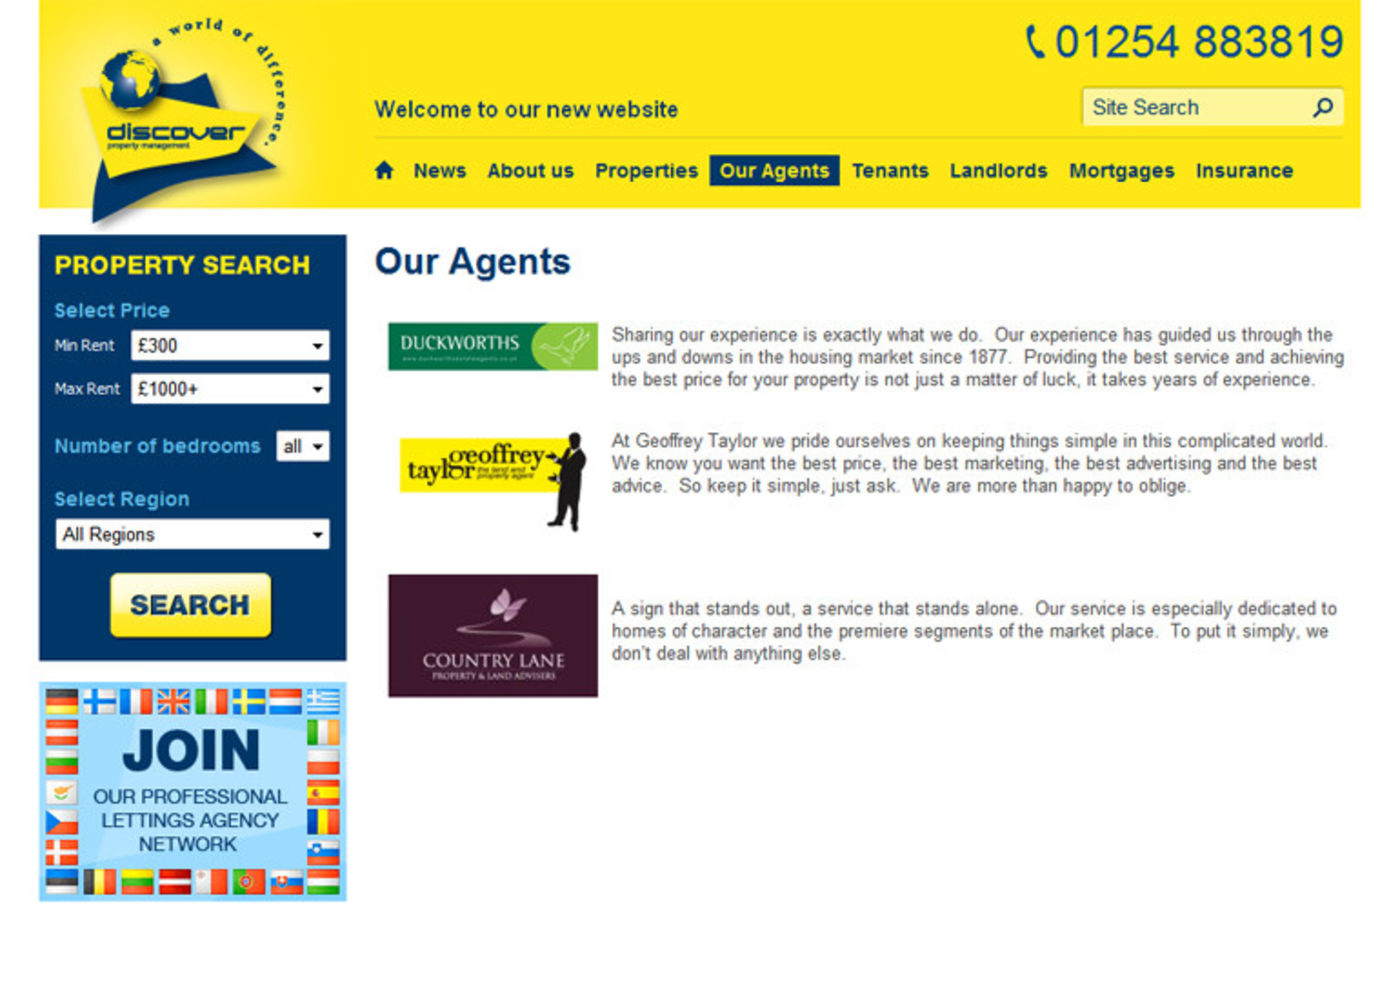 Discover Property Management Our Agents